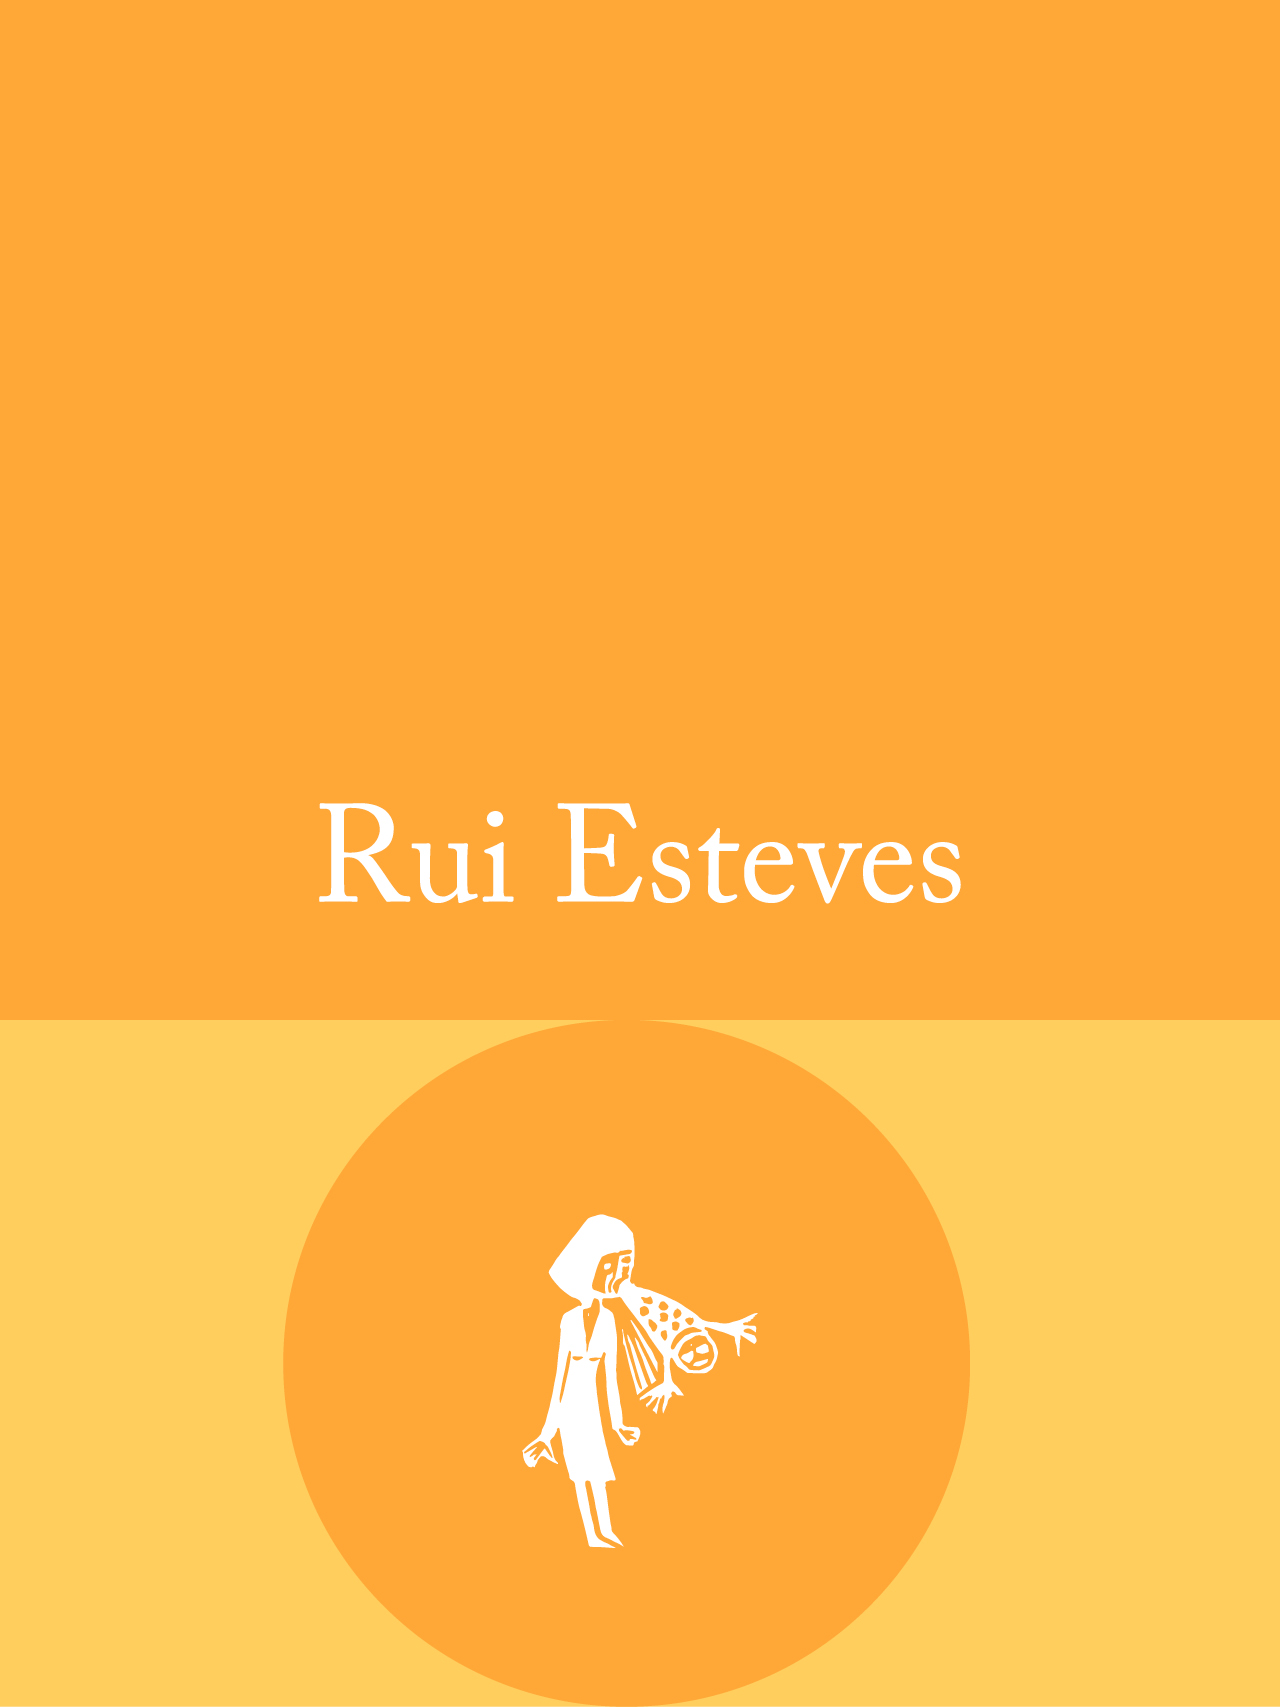 RuiEsteves.jpg